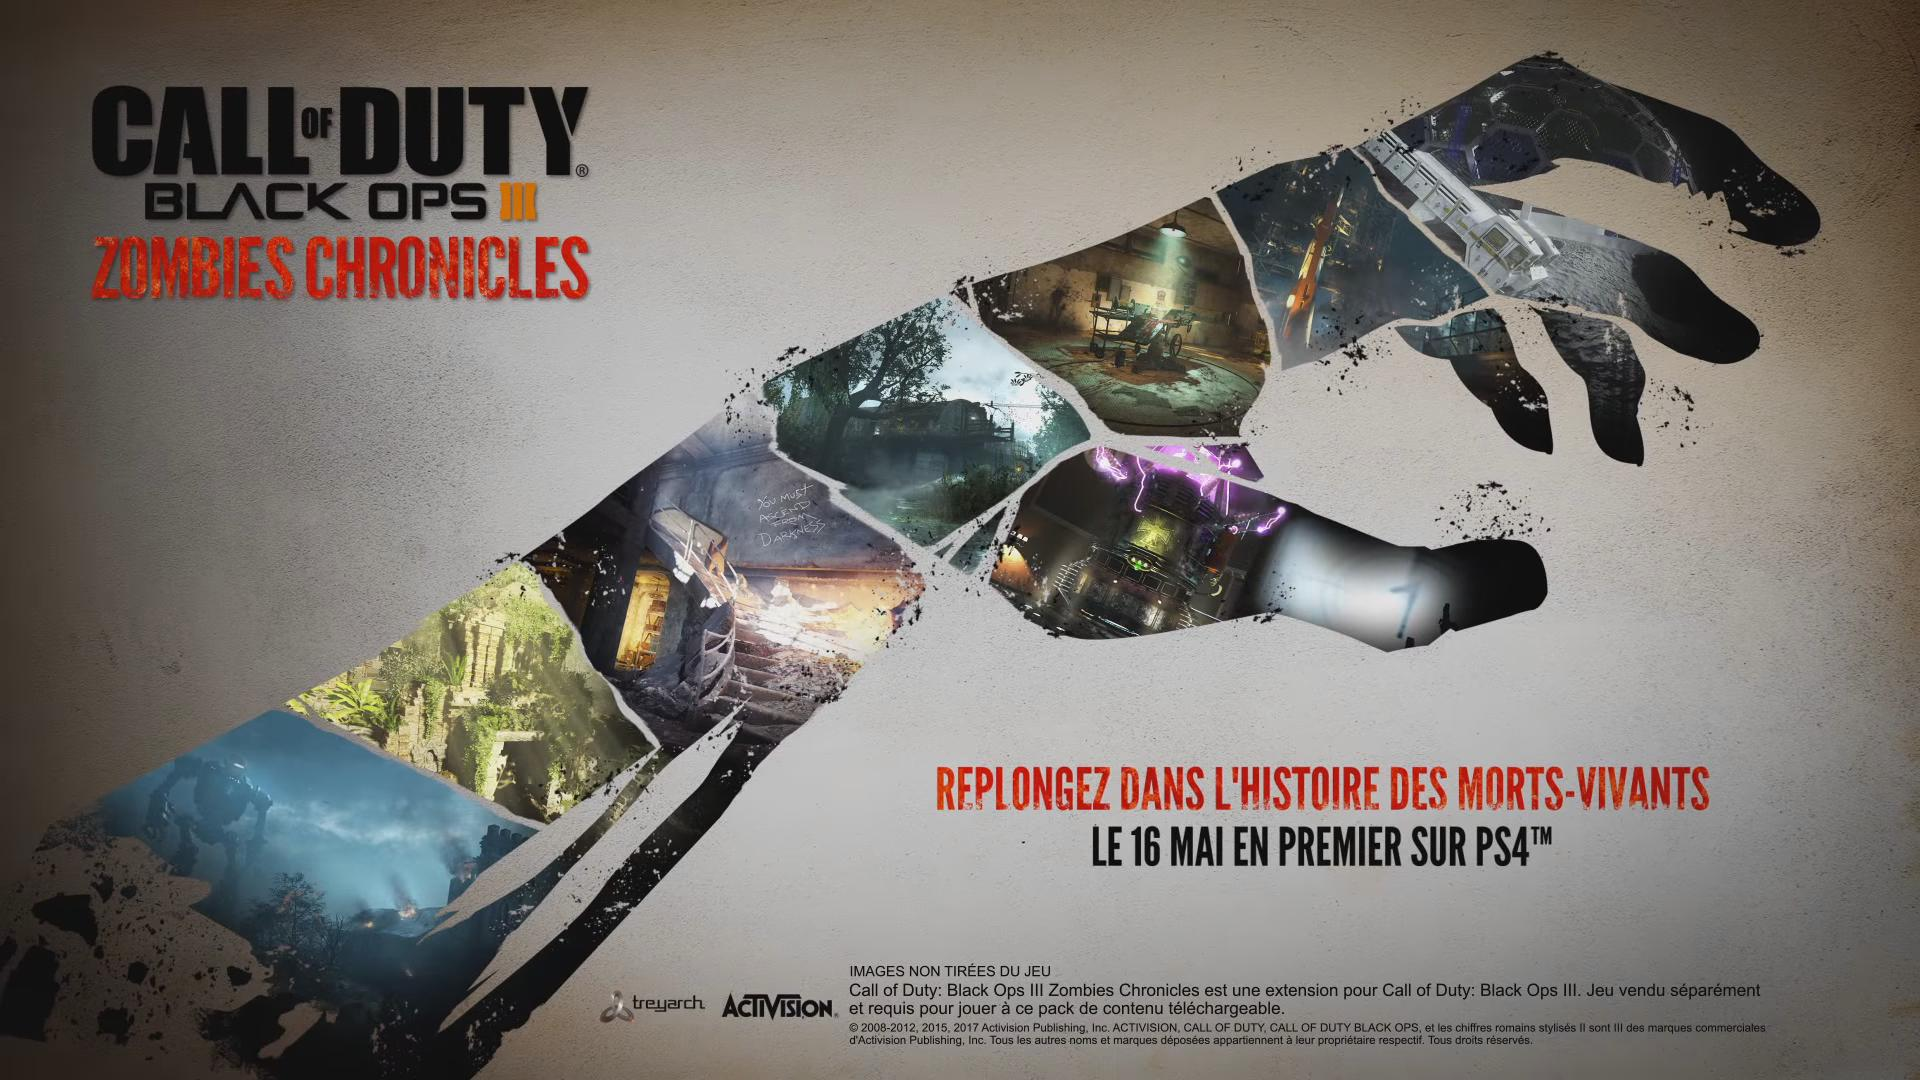 Carte De Visite Maitre Gobblegum Bo3 Lovely The Giant Black Ops 3 Zombie Call Of Duty